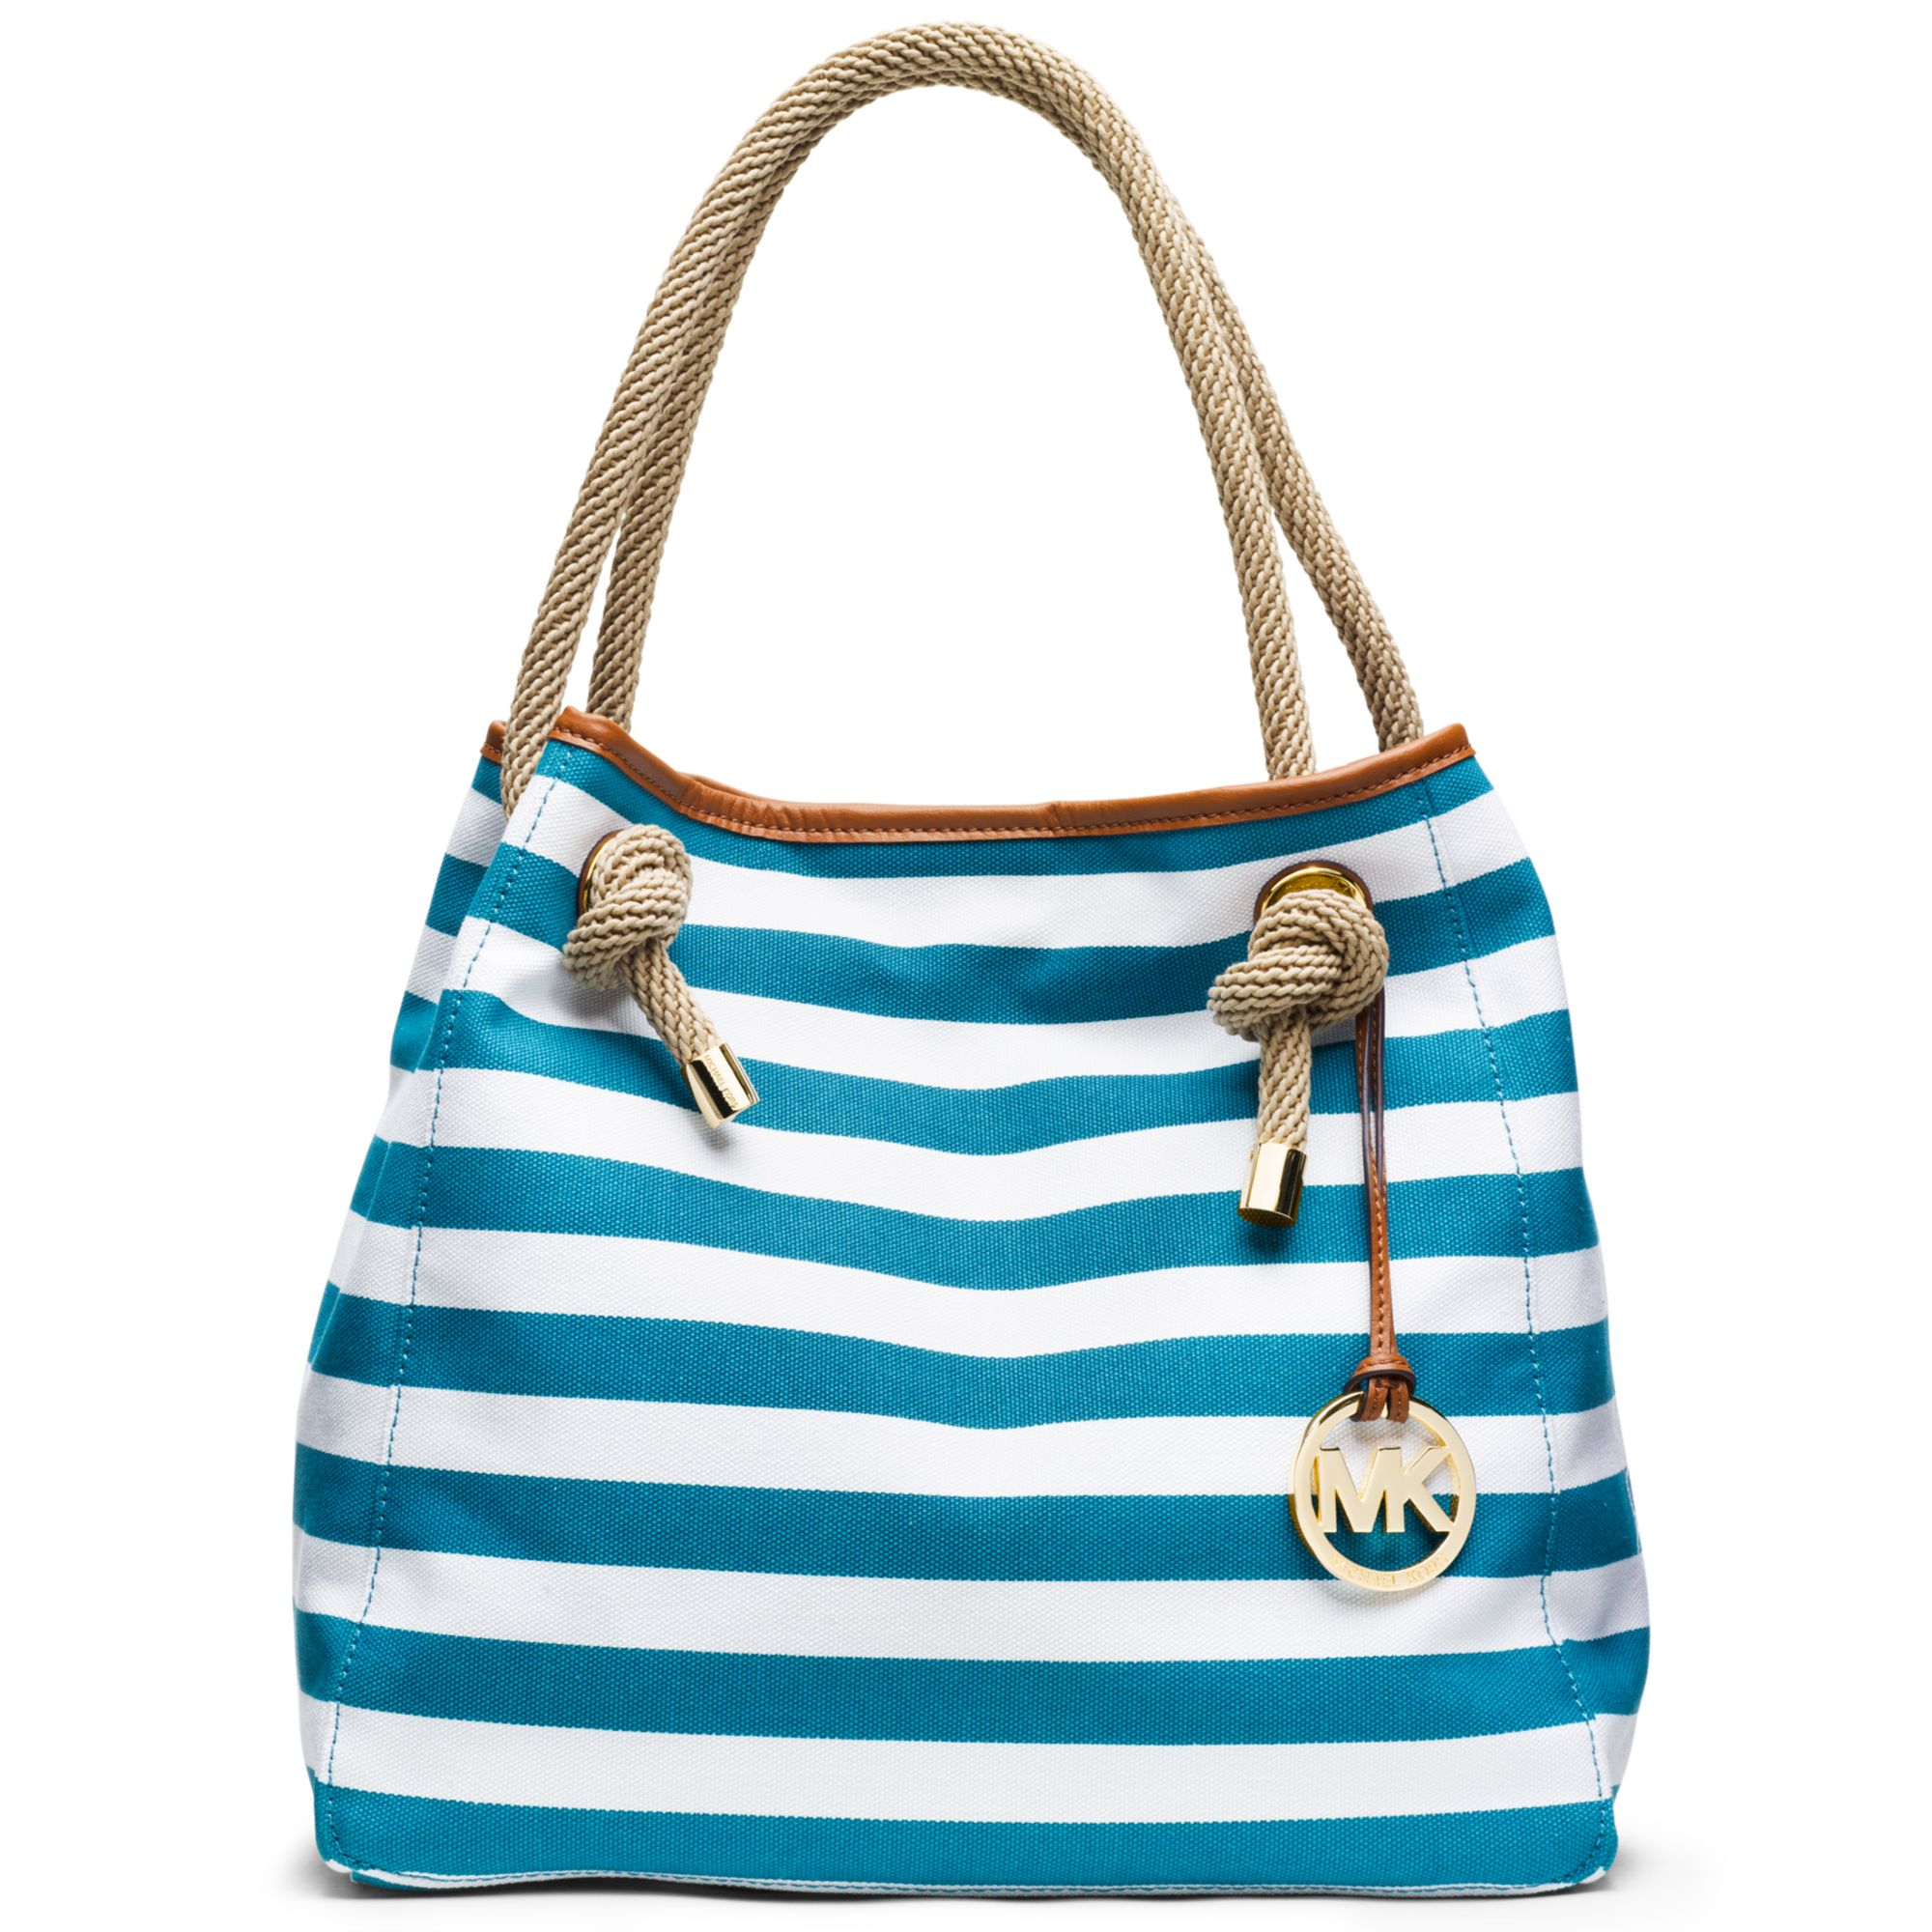 8d009ee1259097 Gallery. Previously sold at: Macy's · Women's Michael Kors Marina